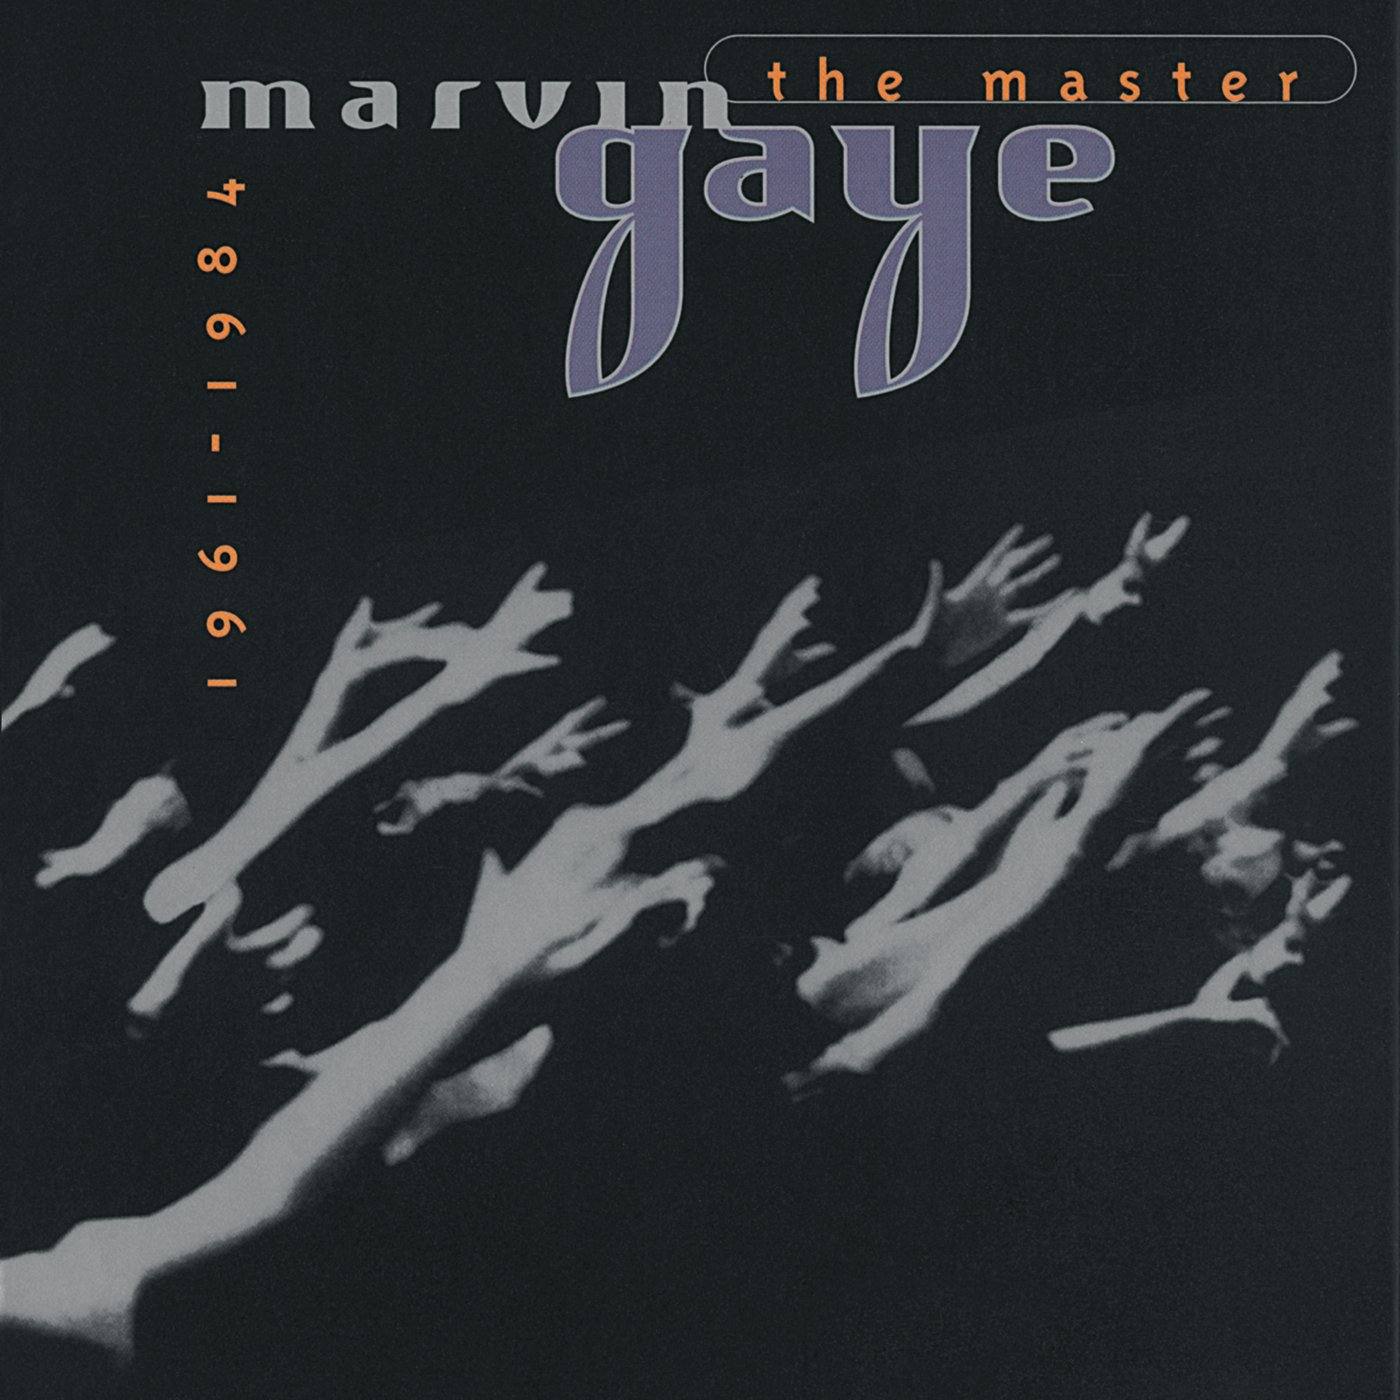 Marvin Gaye - The Master 1961-1984 (1995) [FLAC] Download